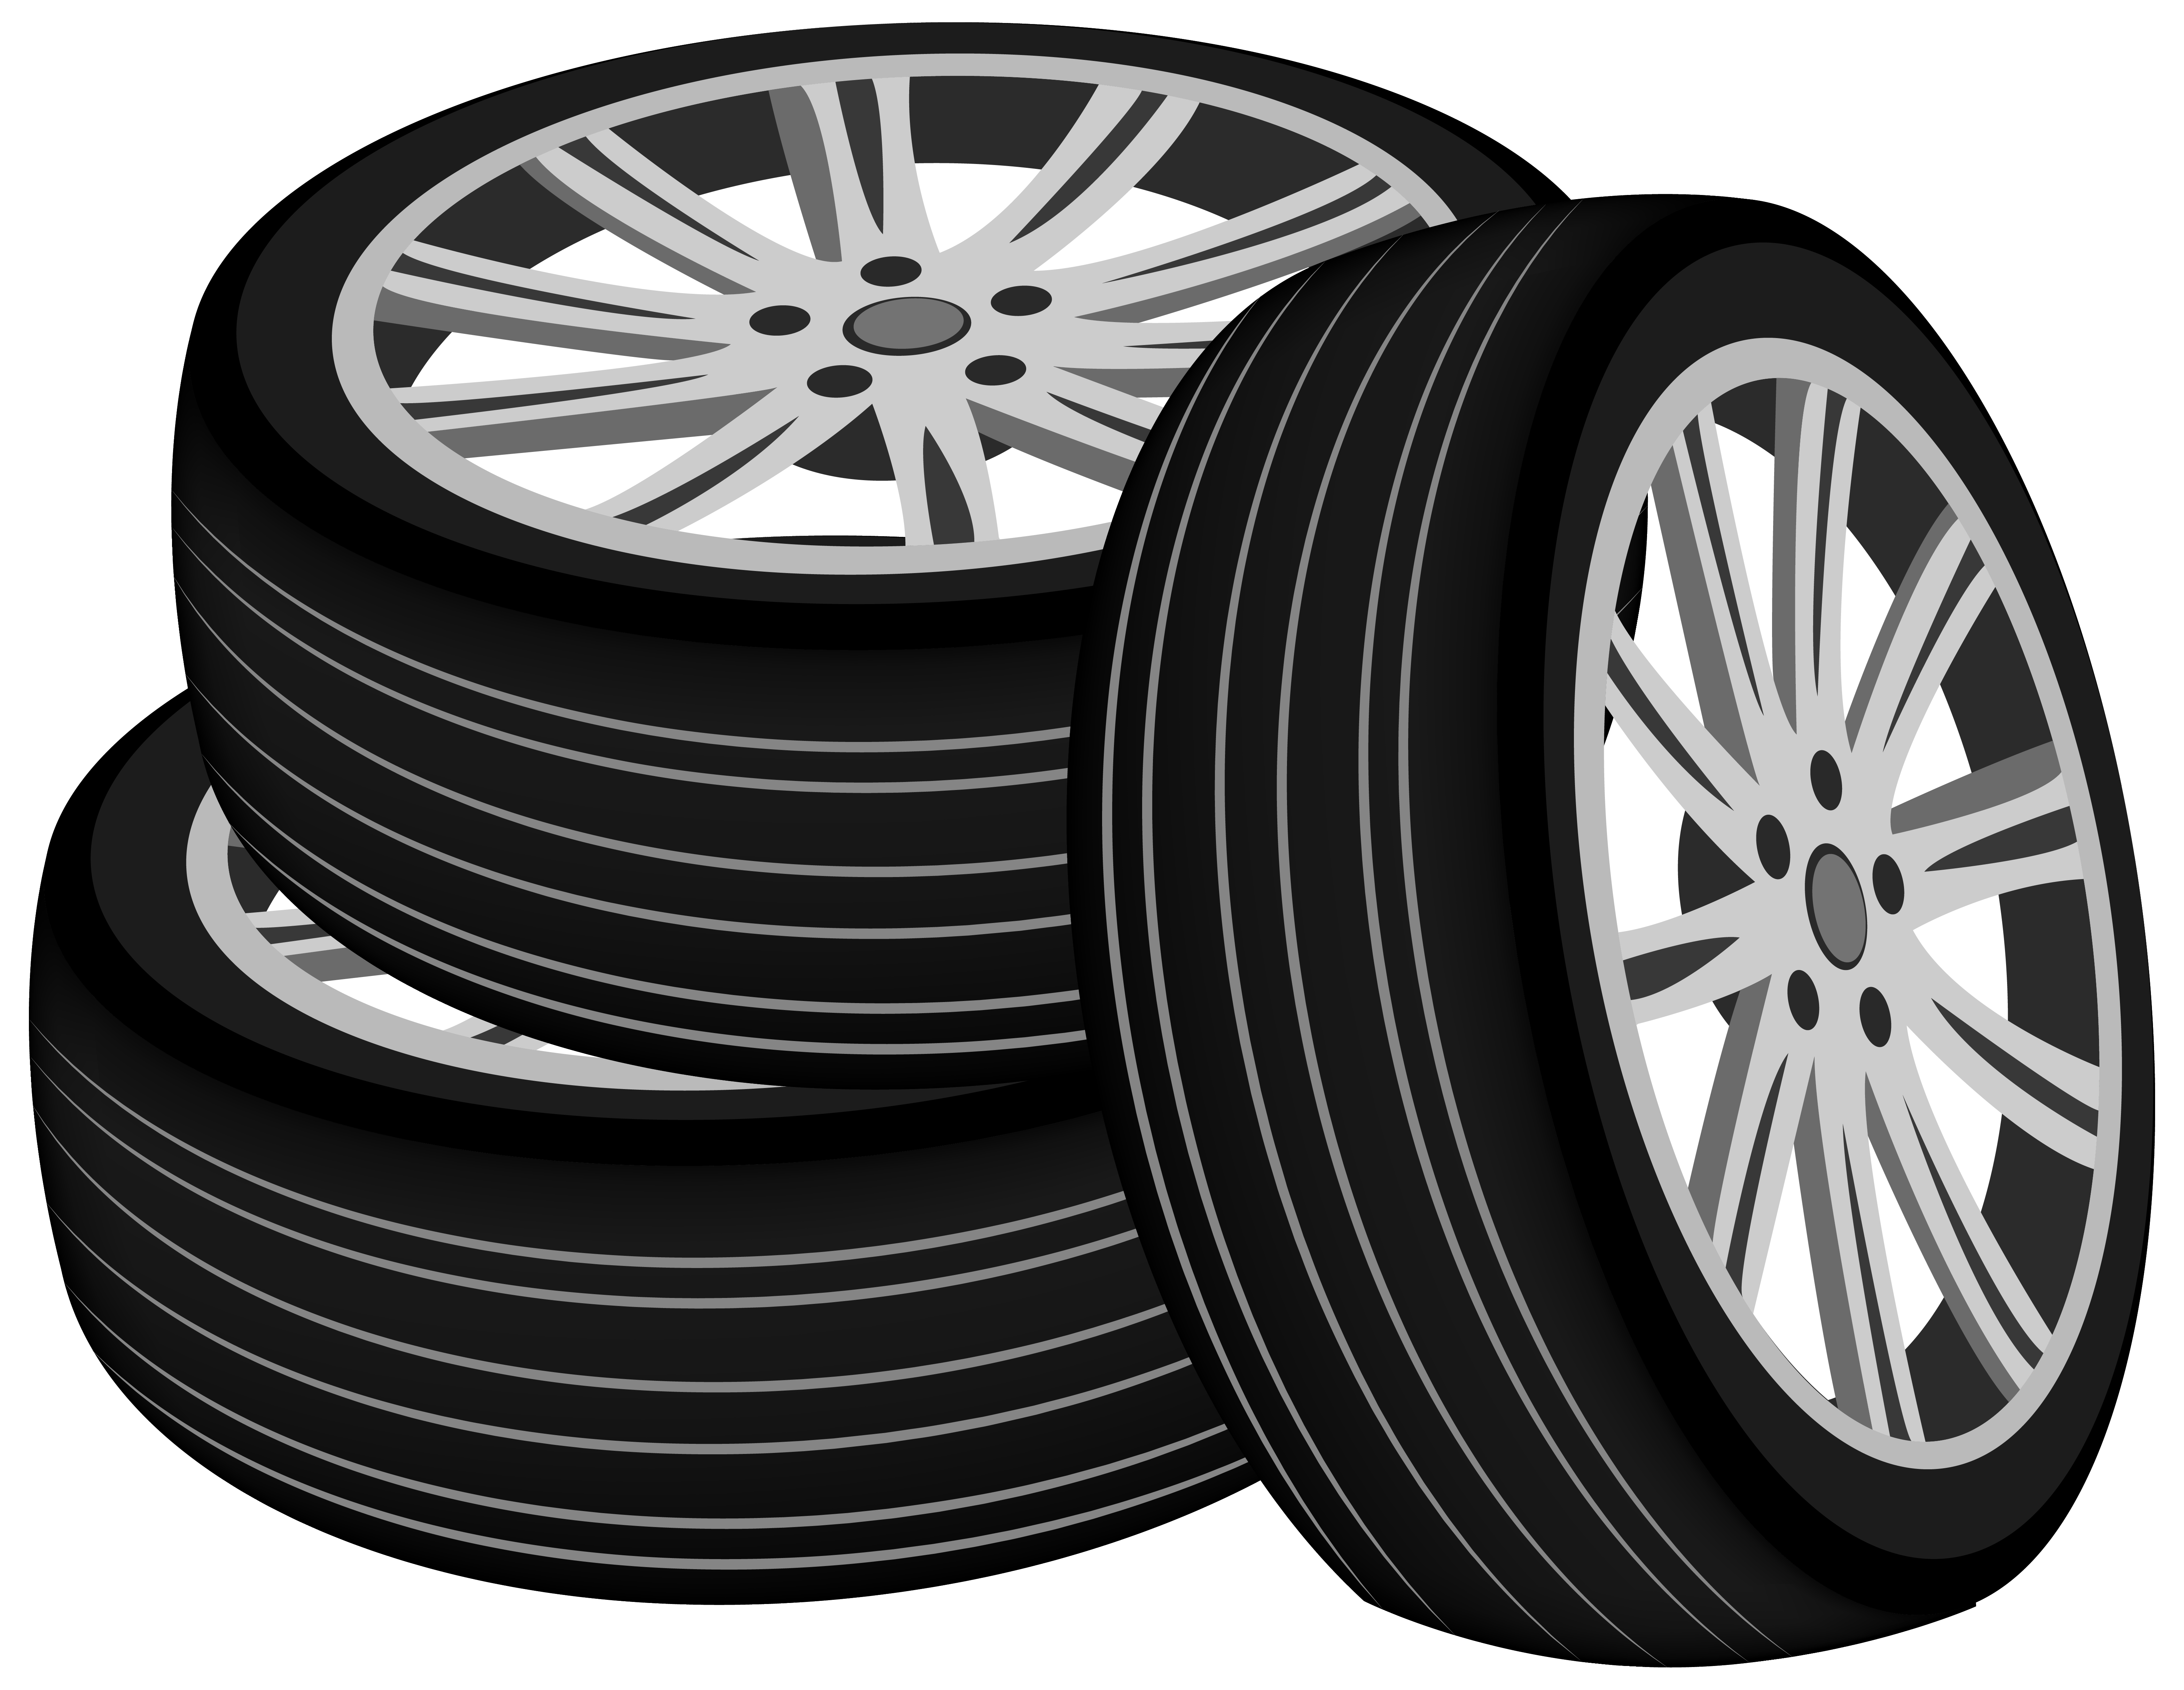 Flames clipart tire Clipart Tires & Vectors Tires